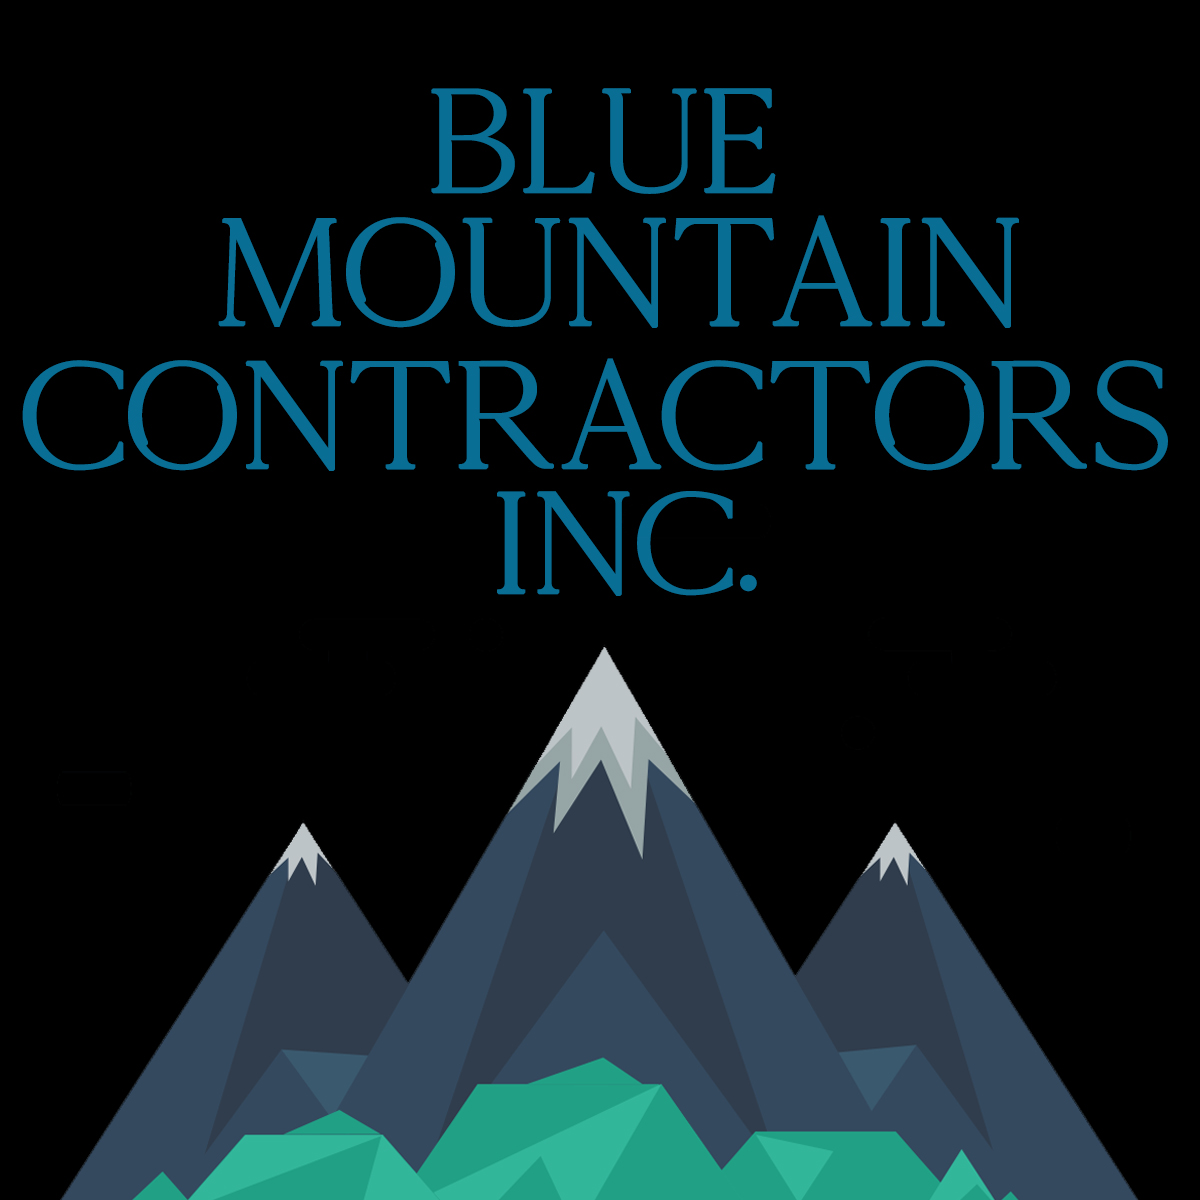 Blue Mountain Contractors Inc. - In business since 1970, Blue Mountain Contractors Inc. can help make your dream home a reality.